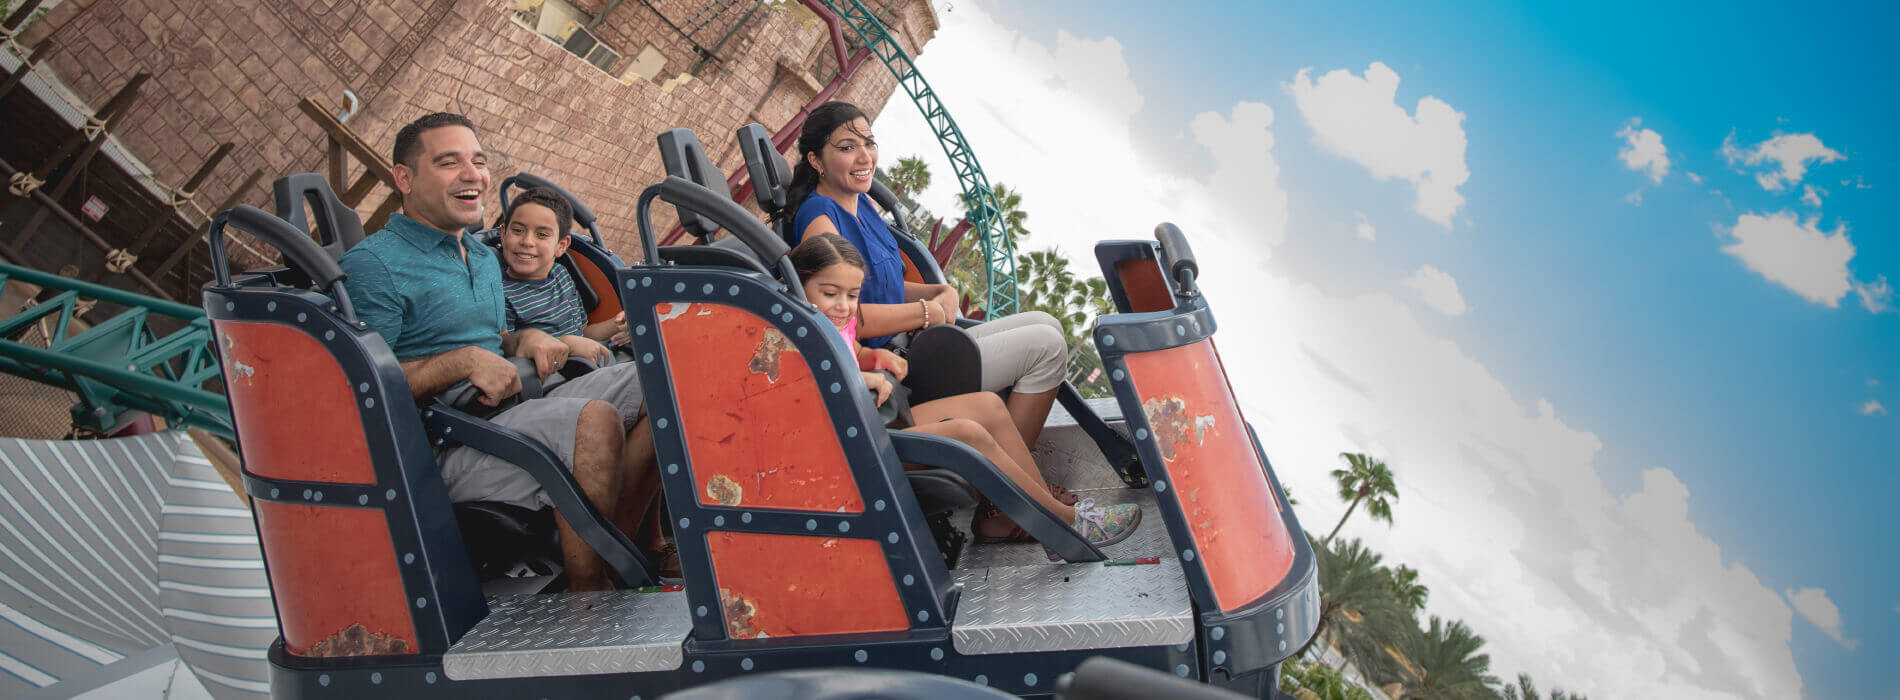 A family enjoys the spinning coaster ride called Cobra's Curse at Busch Gardens Tampa Bay, located in Florida.